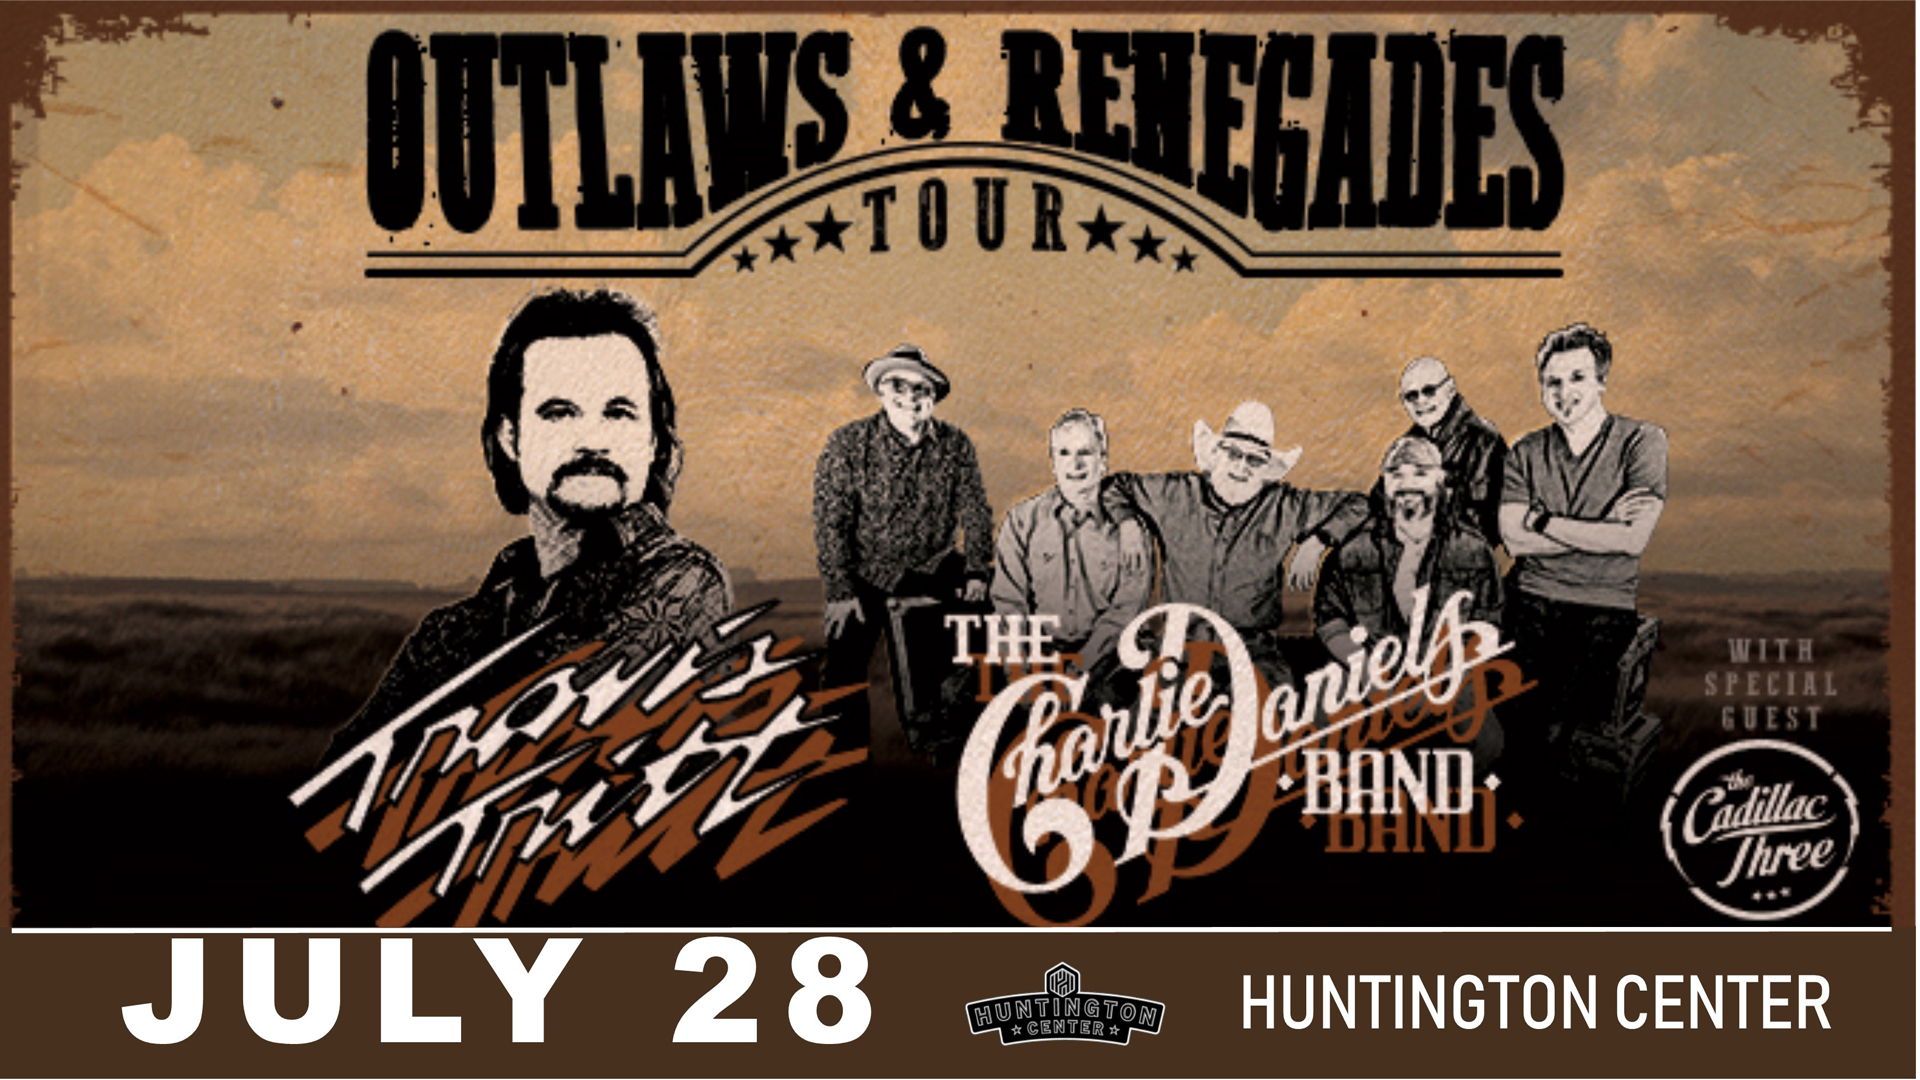 Travis Tritt and Charlie Daniels Band @ The Huntington Center